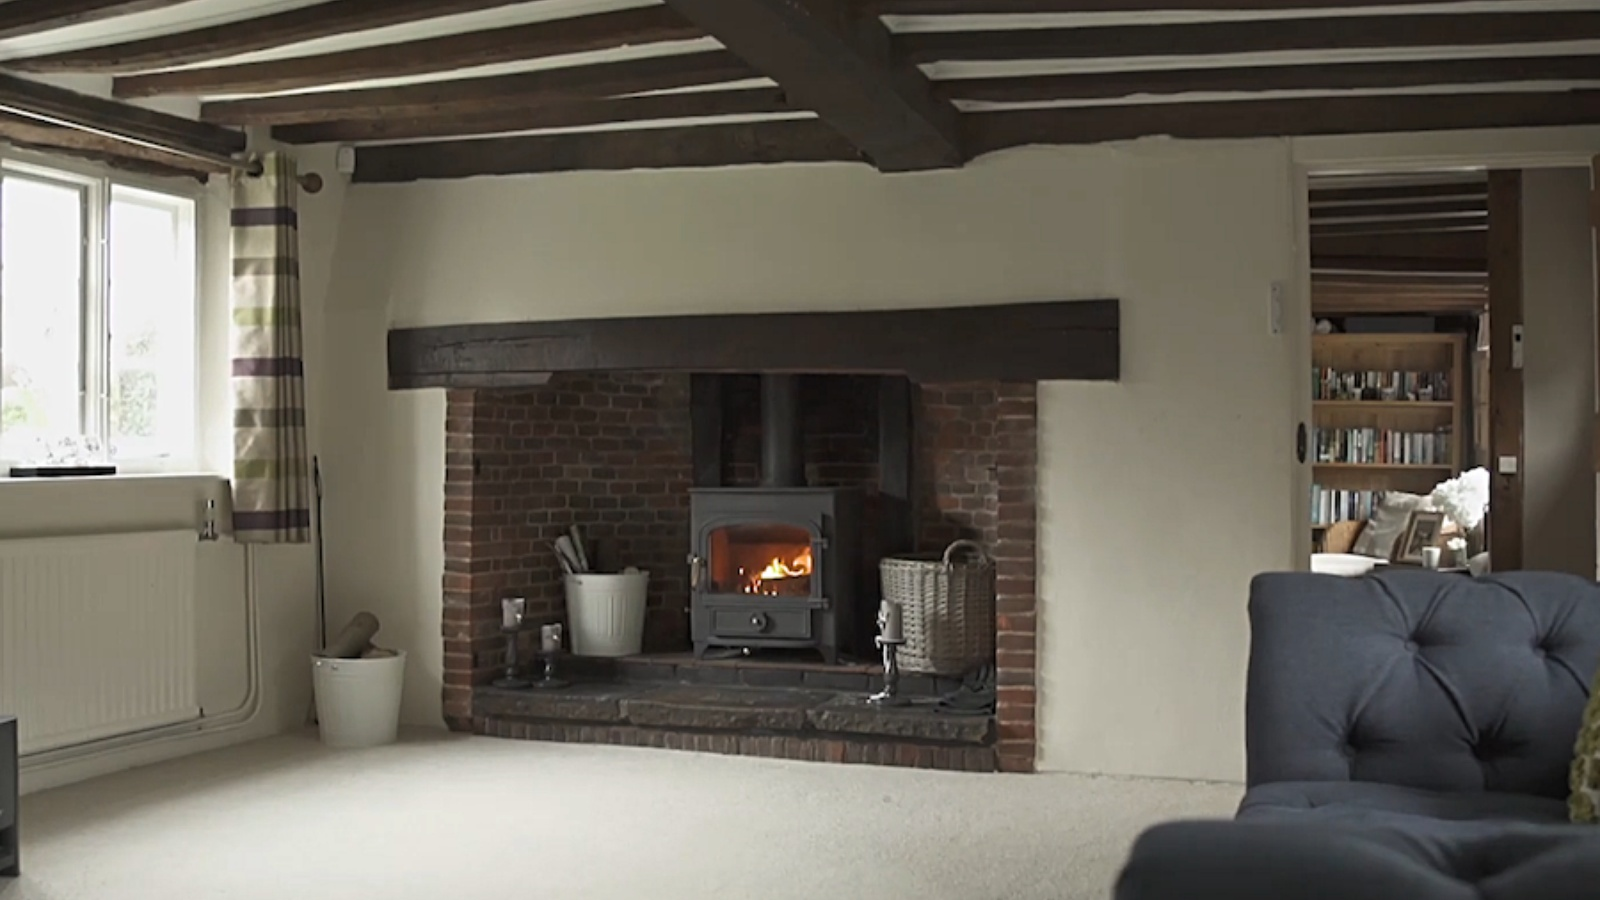 The inglenook fireplace at Cross Lanes Cottage